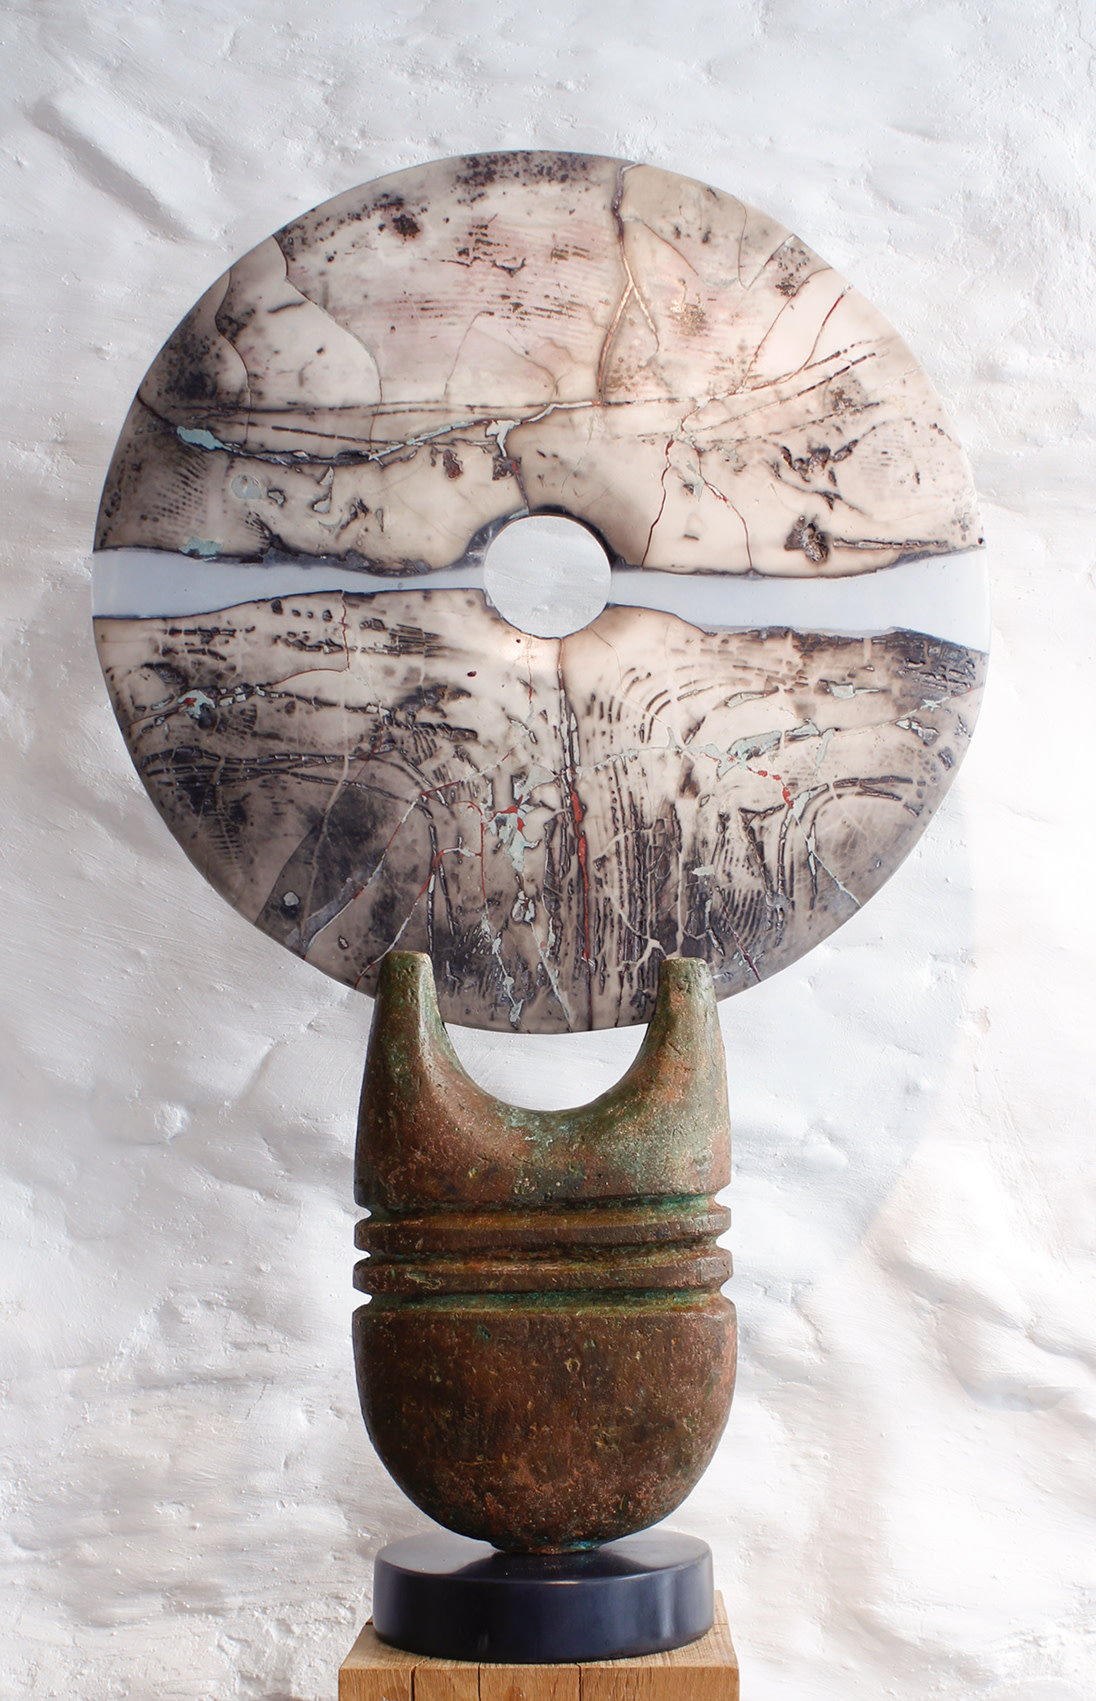 <span class=&#34;link fancybox-details-link&#34;><a href=&#34;/artists/40-peter-hayes/works/5647-peter-hayes-raku-disc-on-bronze-base-2018/&#34;>View Detail Page</a></span><div class=&#34;artist&#34;><strong>Peter Hayes</strong></div> <div class=&#34;title&#34;><em>Raku Disc on Bronze Base</em>, 2018</div> <div class=&#34;signed_and_dated&#34;>signed on base</div> <div class=&#34;medium&#34;>stoneware</div> <div class=&#34;dimensions&#34;>81.3 x 48.3 cm<br /> 32 x 19 inches</div><div class=&#34;copyright_line&#34;>OwnArt: £ 225 x 10 Months, 0% APR</div>